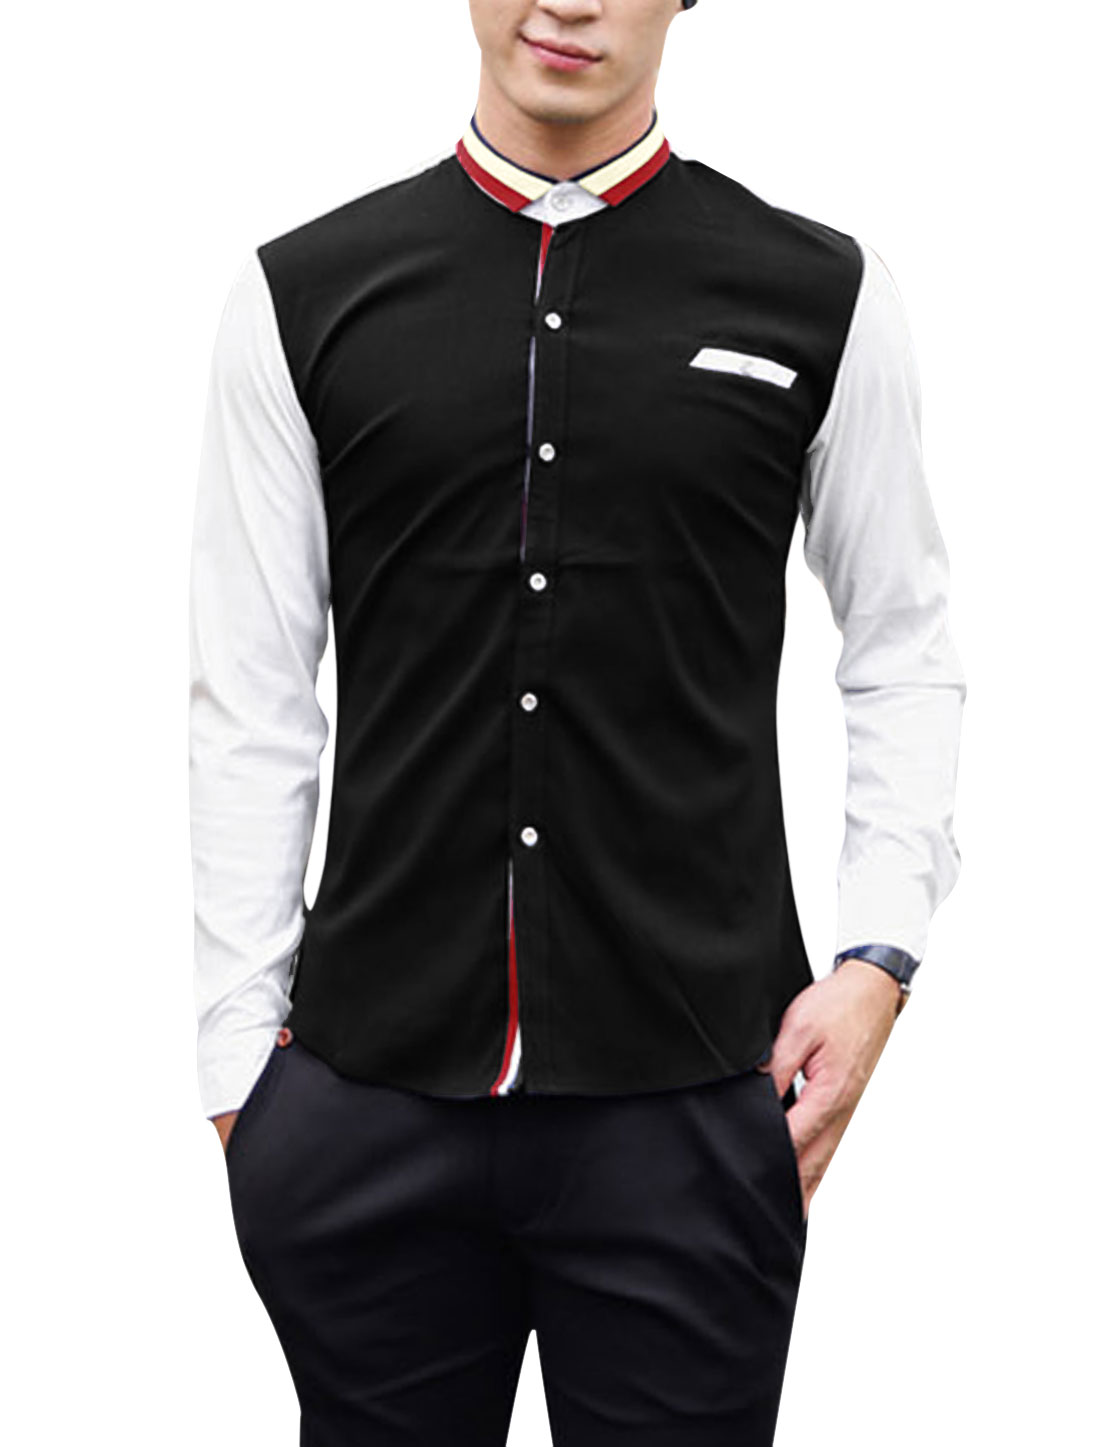 Men Stripes Ribbed Detail Contrast Long Sleeves Leisure Shirt Black M